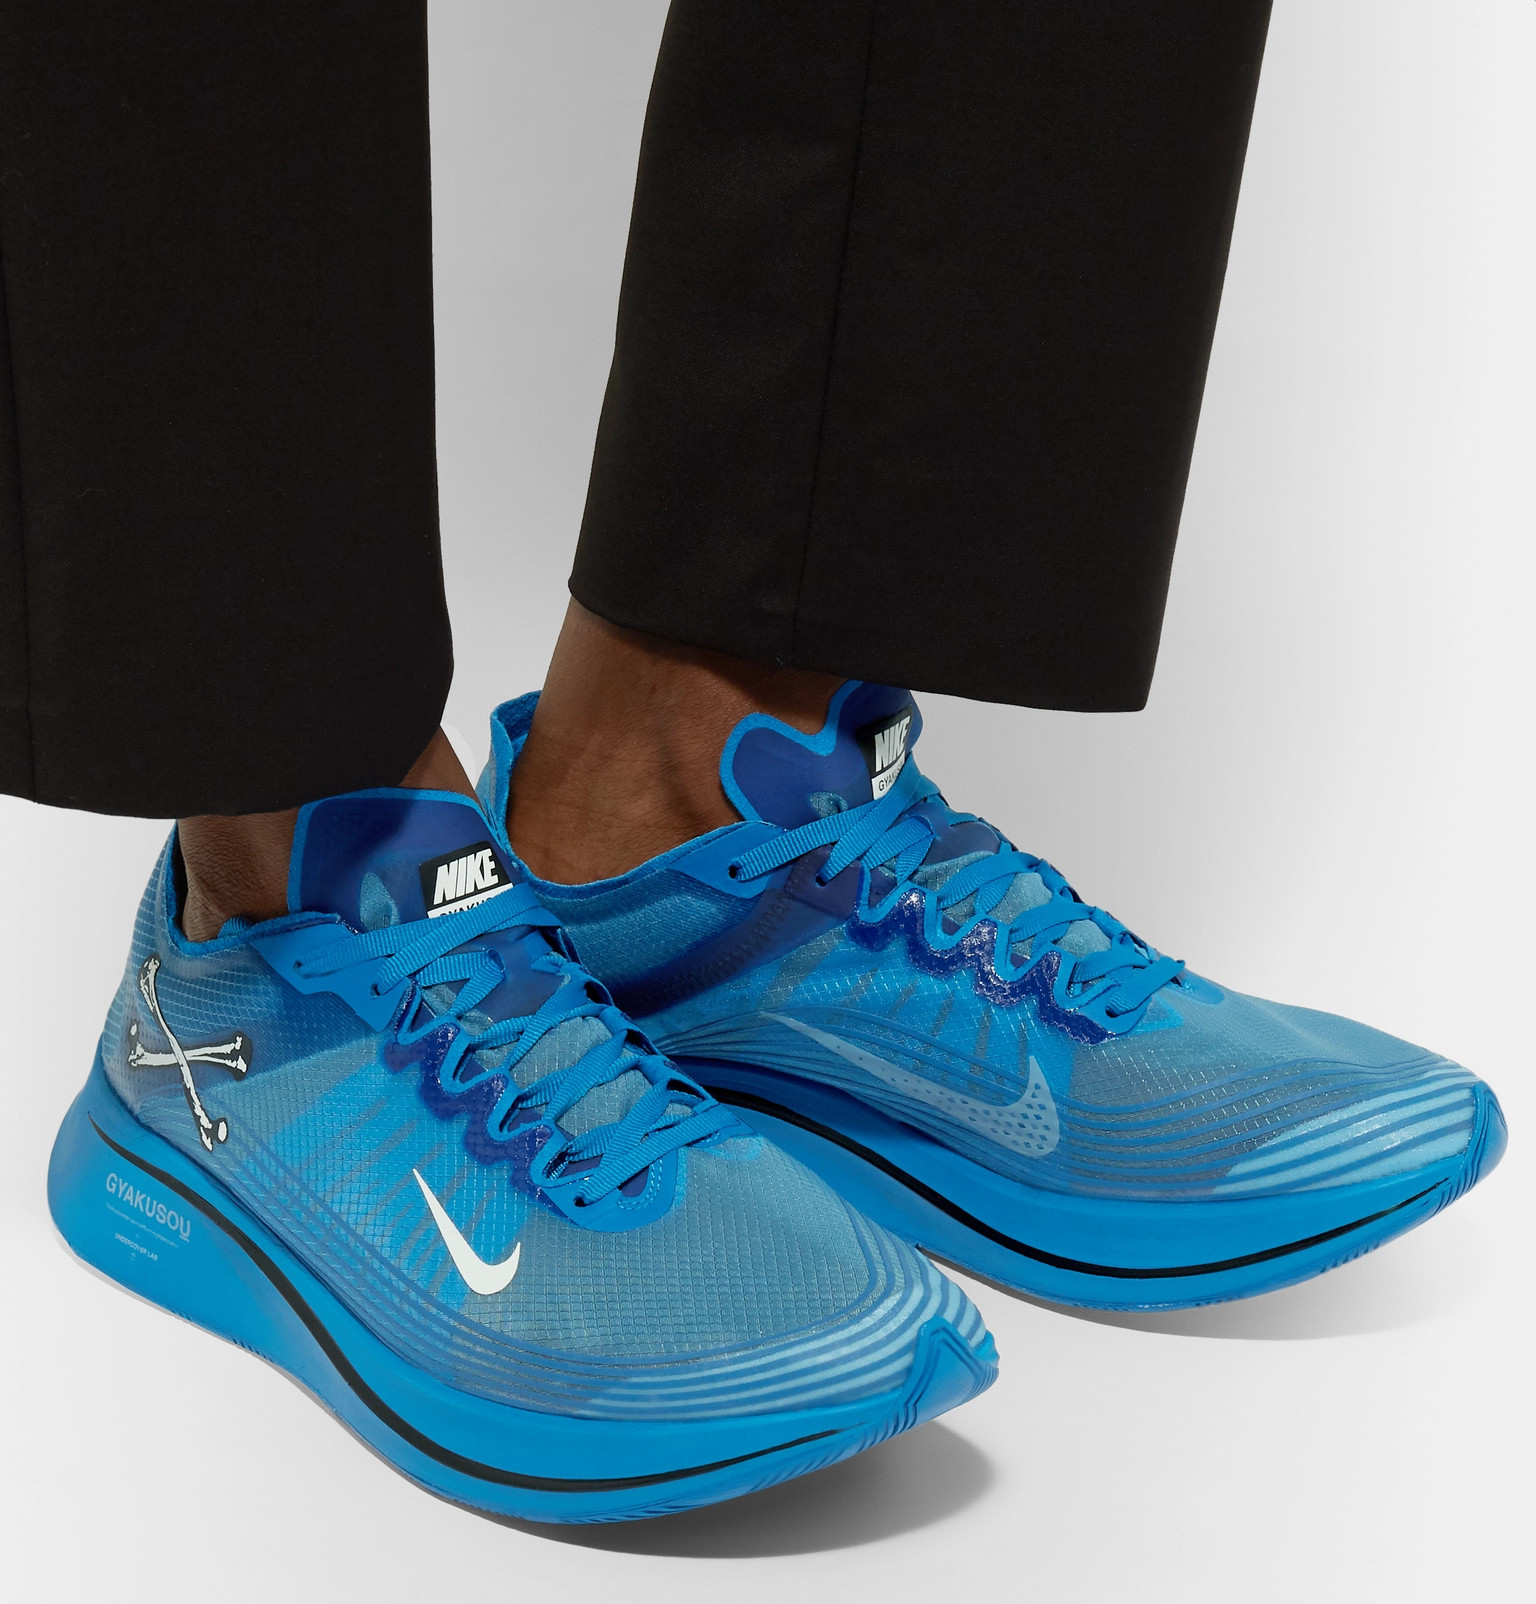 9e0290ccf979 Nike x Undercover - + GYAKUSOU Zoom Fly SP Ripstop Sneakers